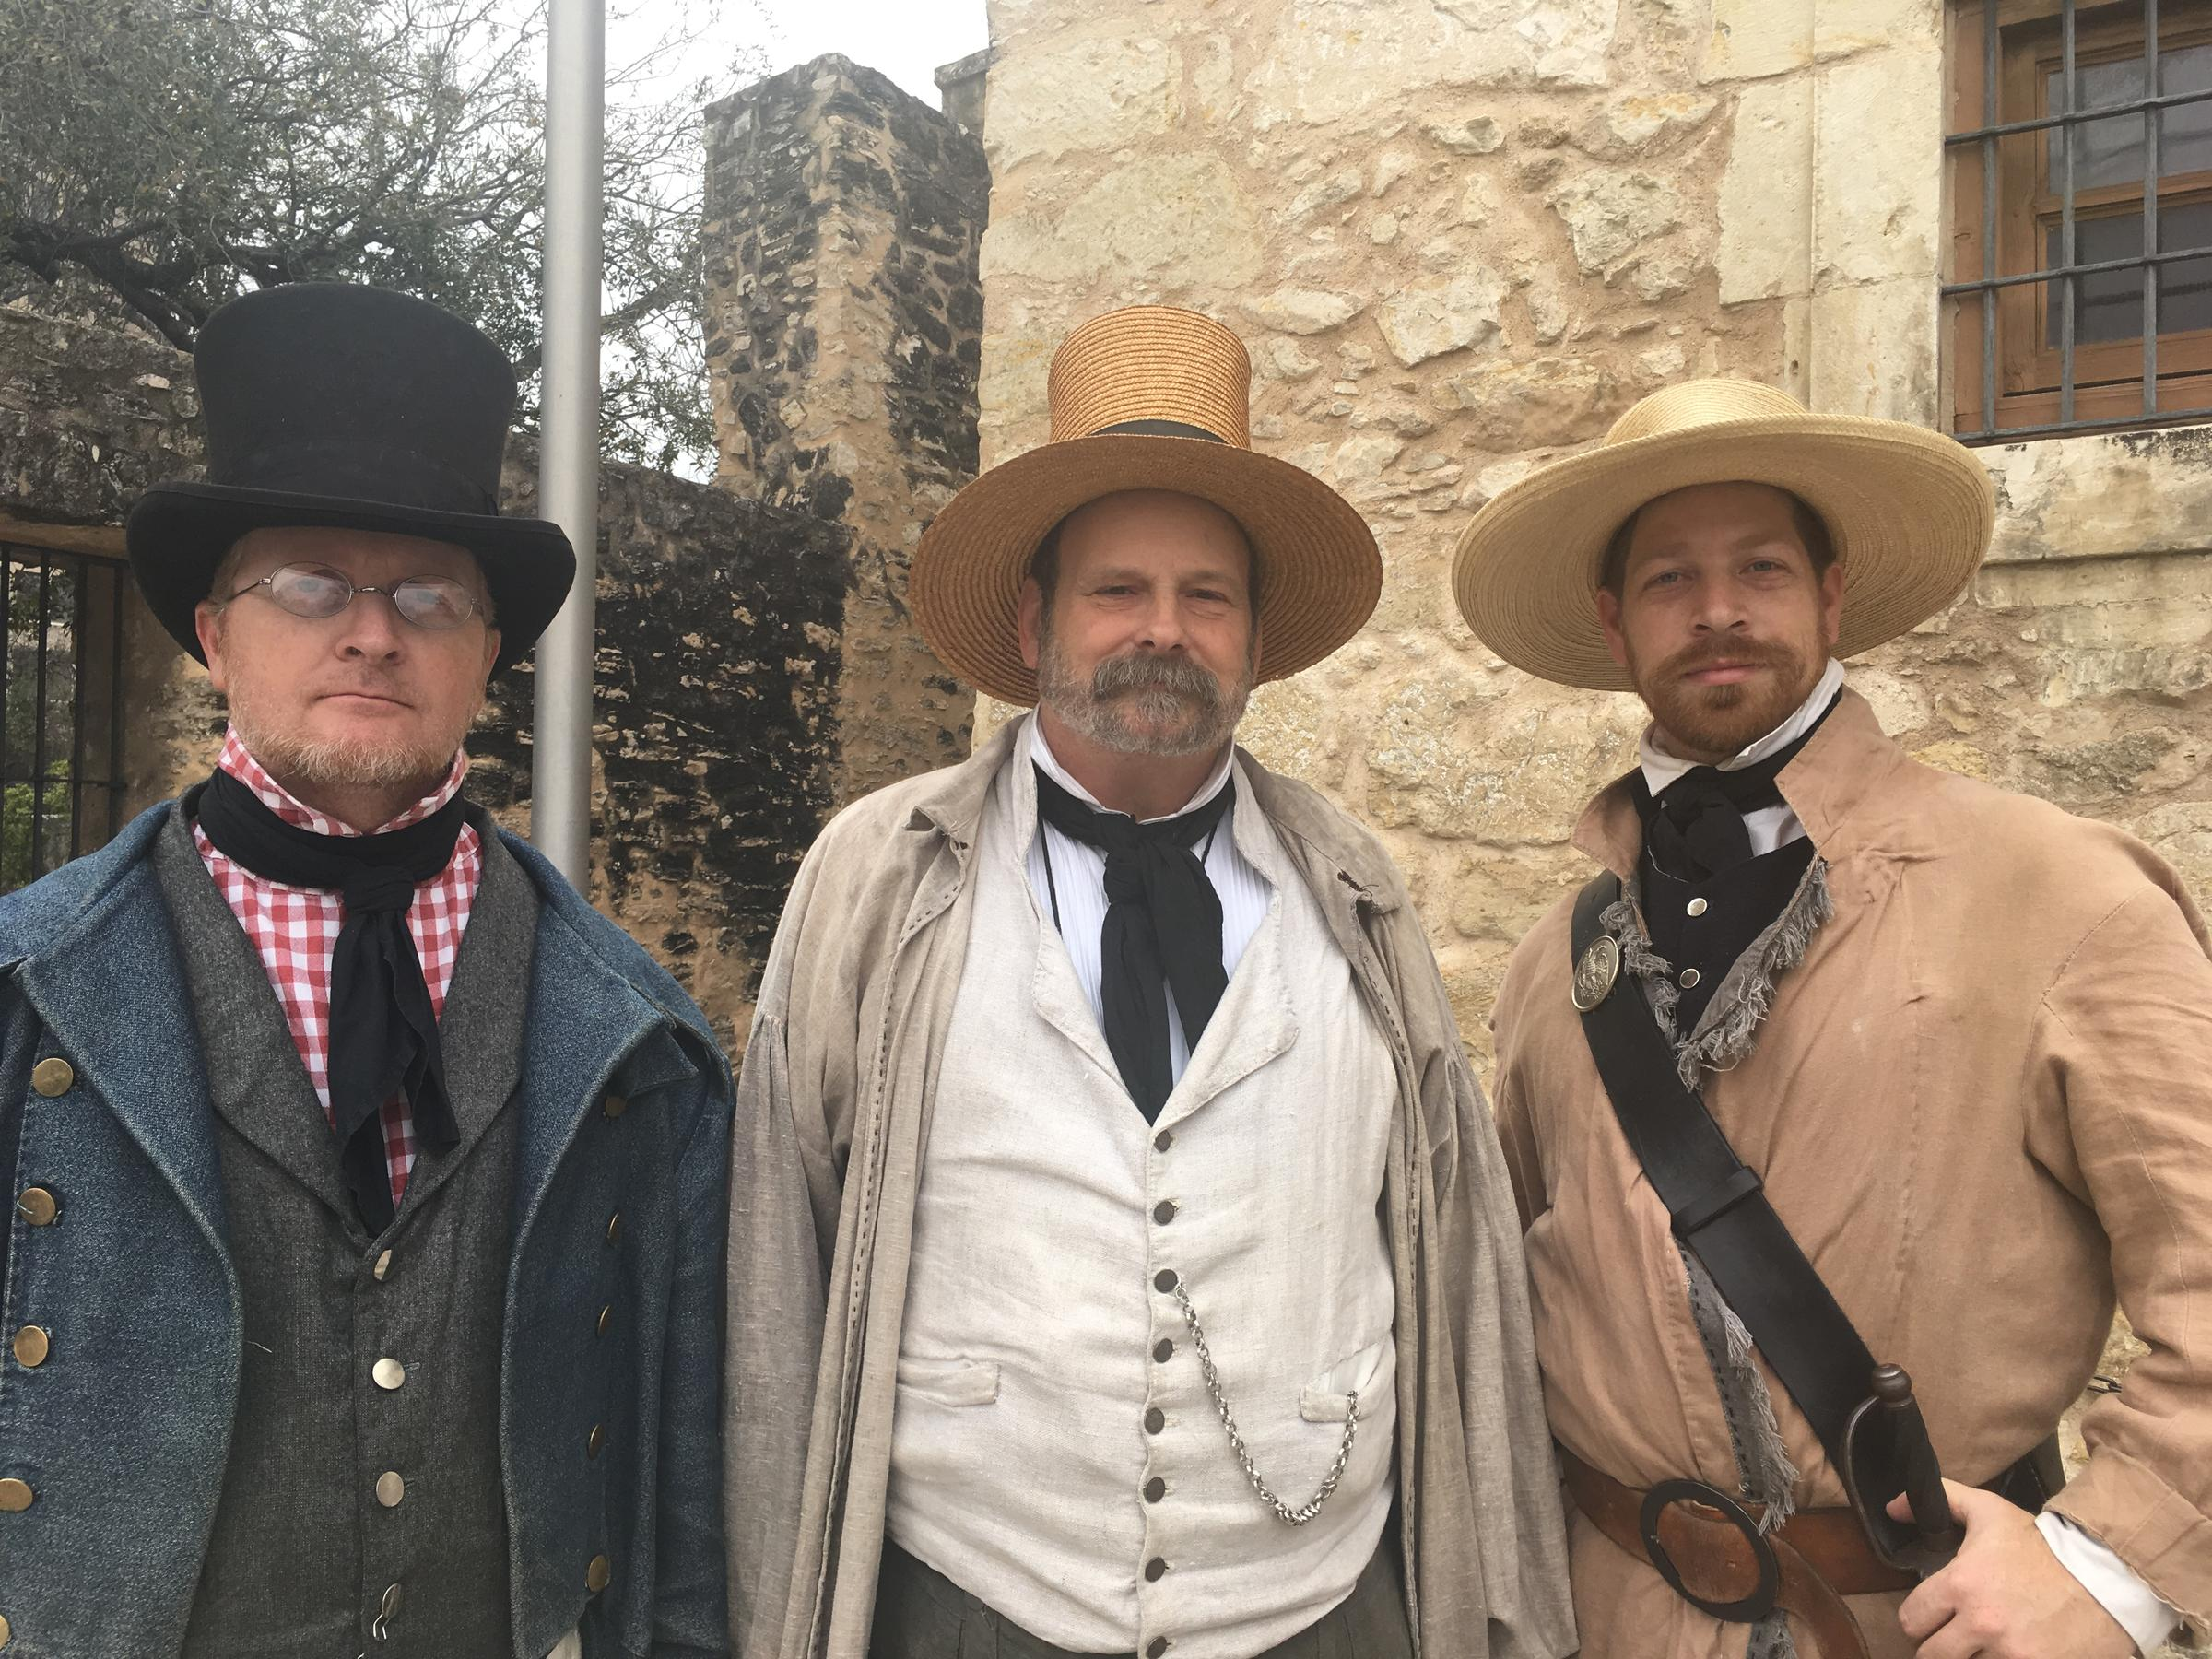 1836 Letter Readings Bring Alamo Battle To Life | Texas ...